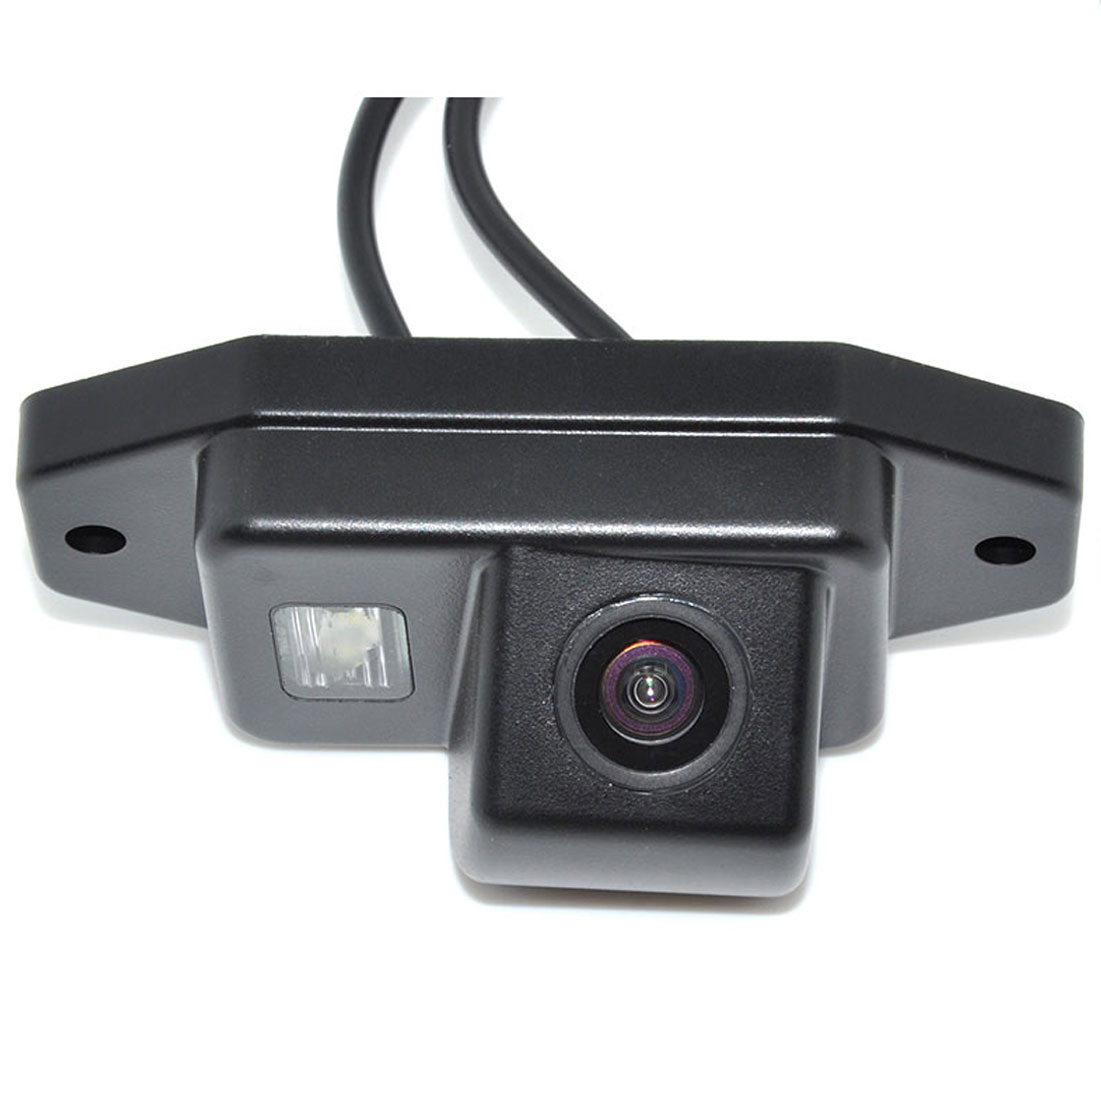 HD CCD Car Rear View Camera Backup Camera For 2002-2009 Toyota Land Cruiser 120 Series Toyota Prado 2700 4000